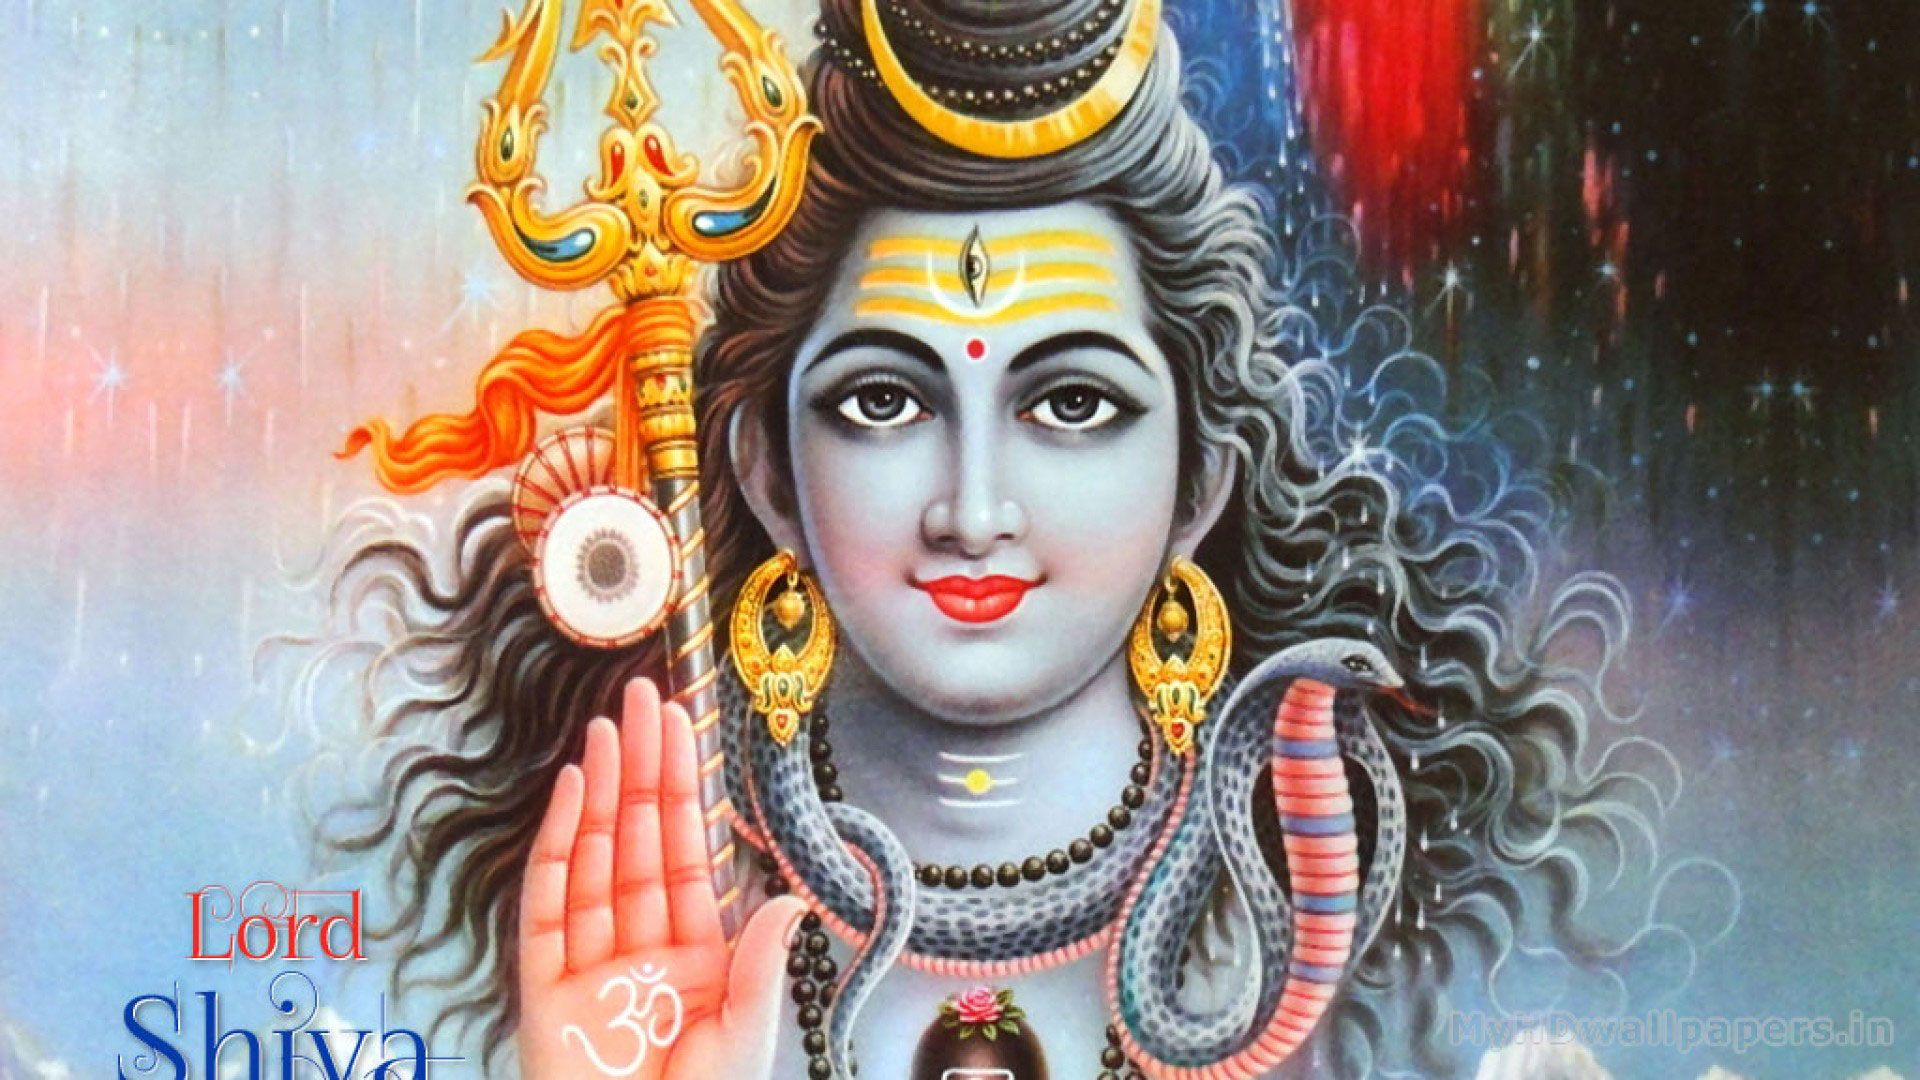 Hd Pics Photos Stunning Attractive Lord Shiva 17 Hd Desktop Background Wallpaper Shiva Wallpaper Shiva Lord Shiva